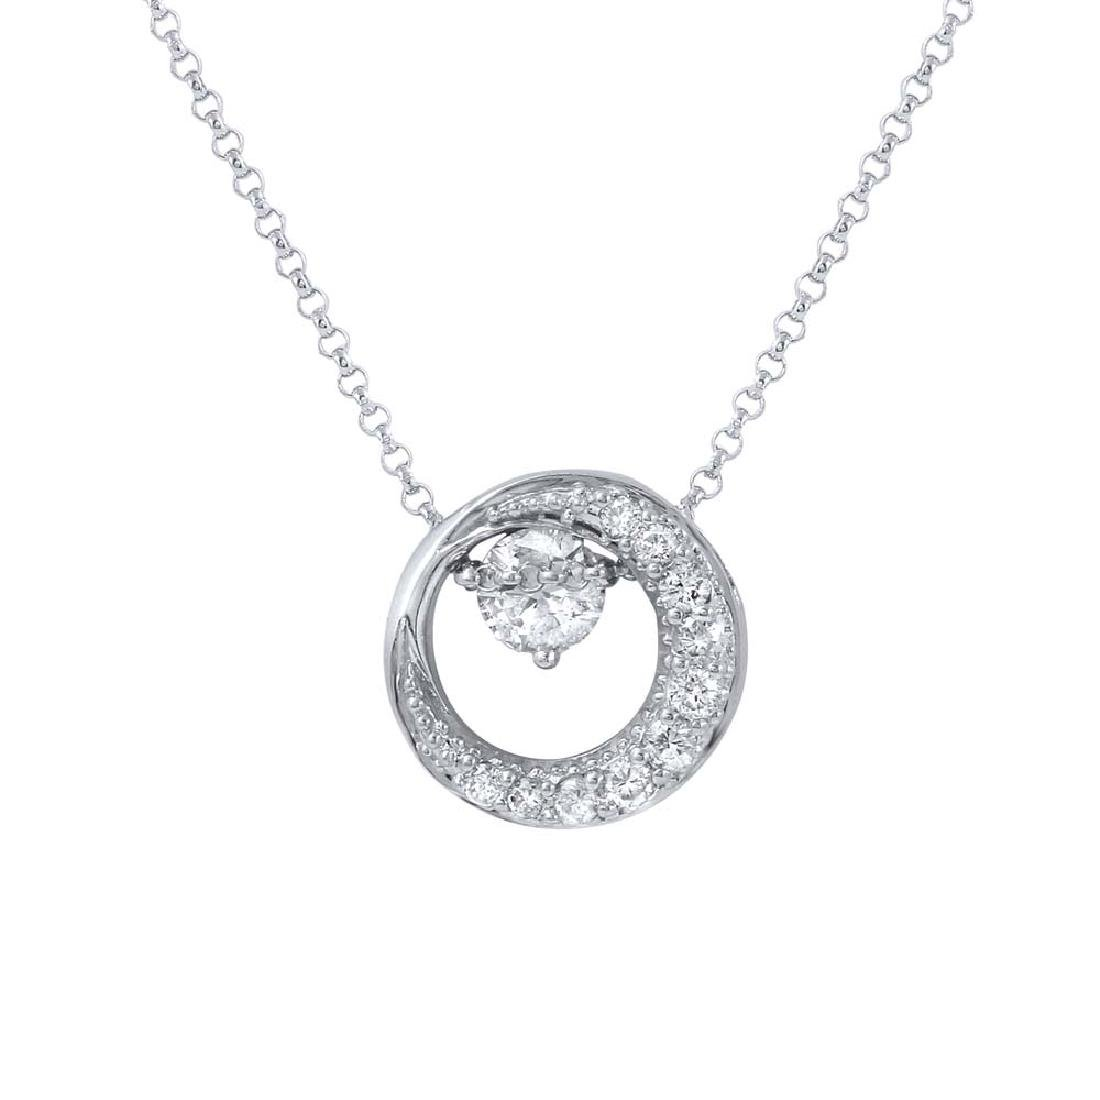 Genuine 0.66 TCW 14K White Gold Ladies Necklace